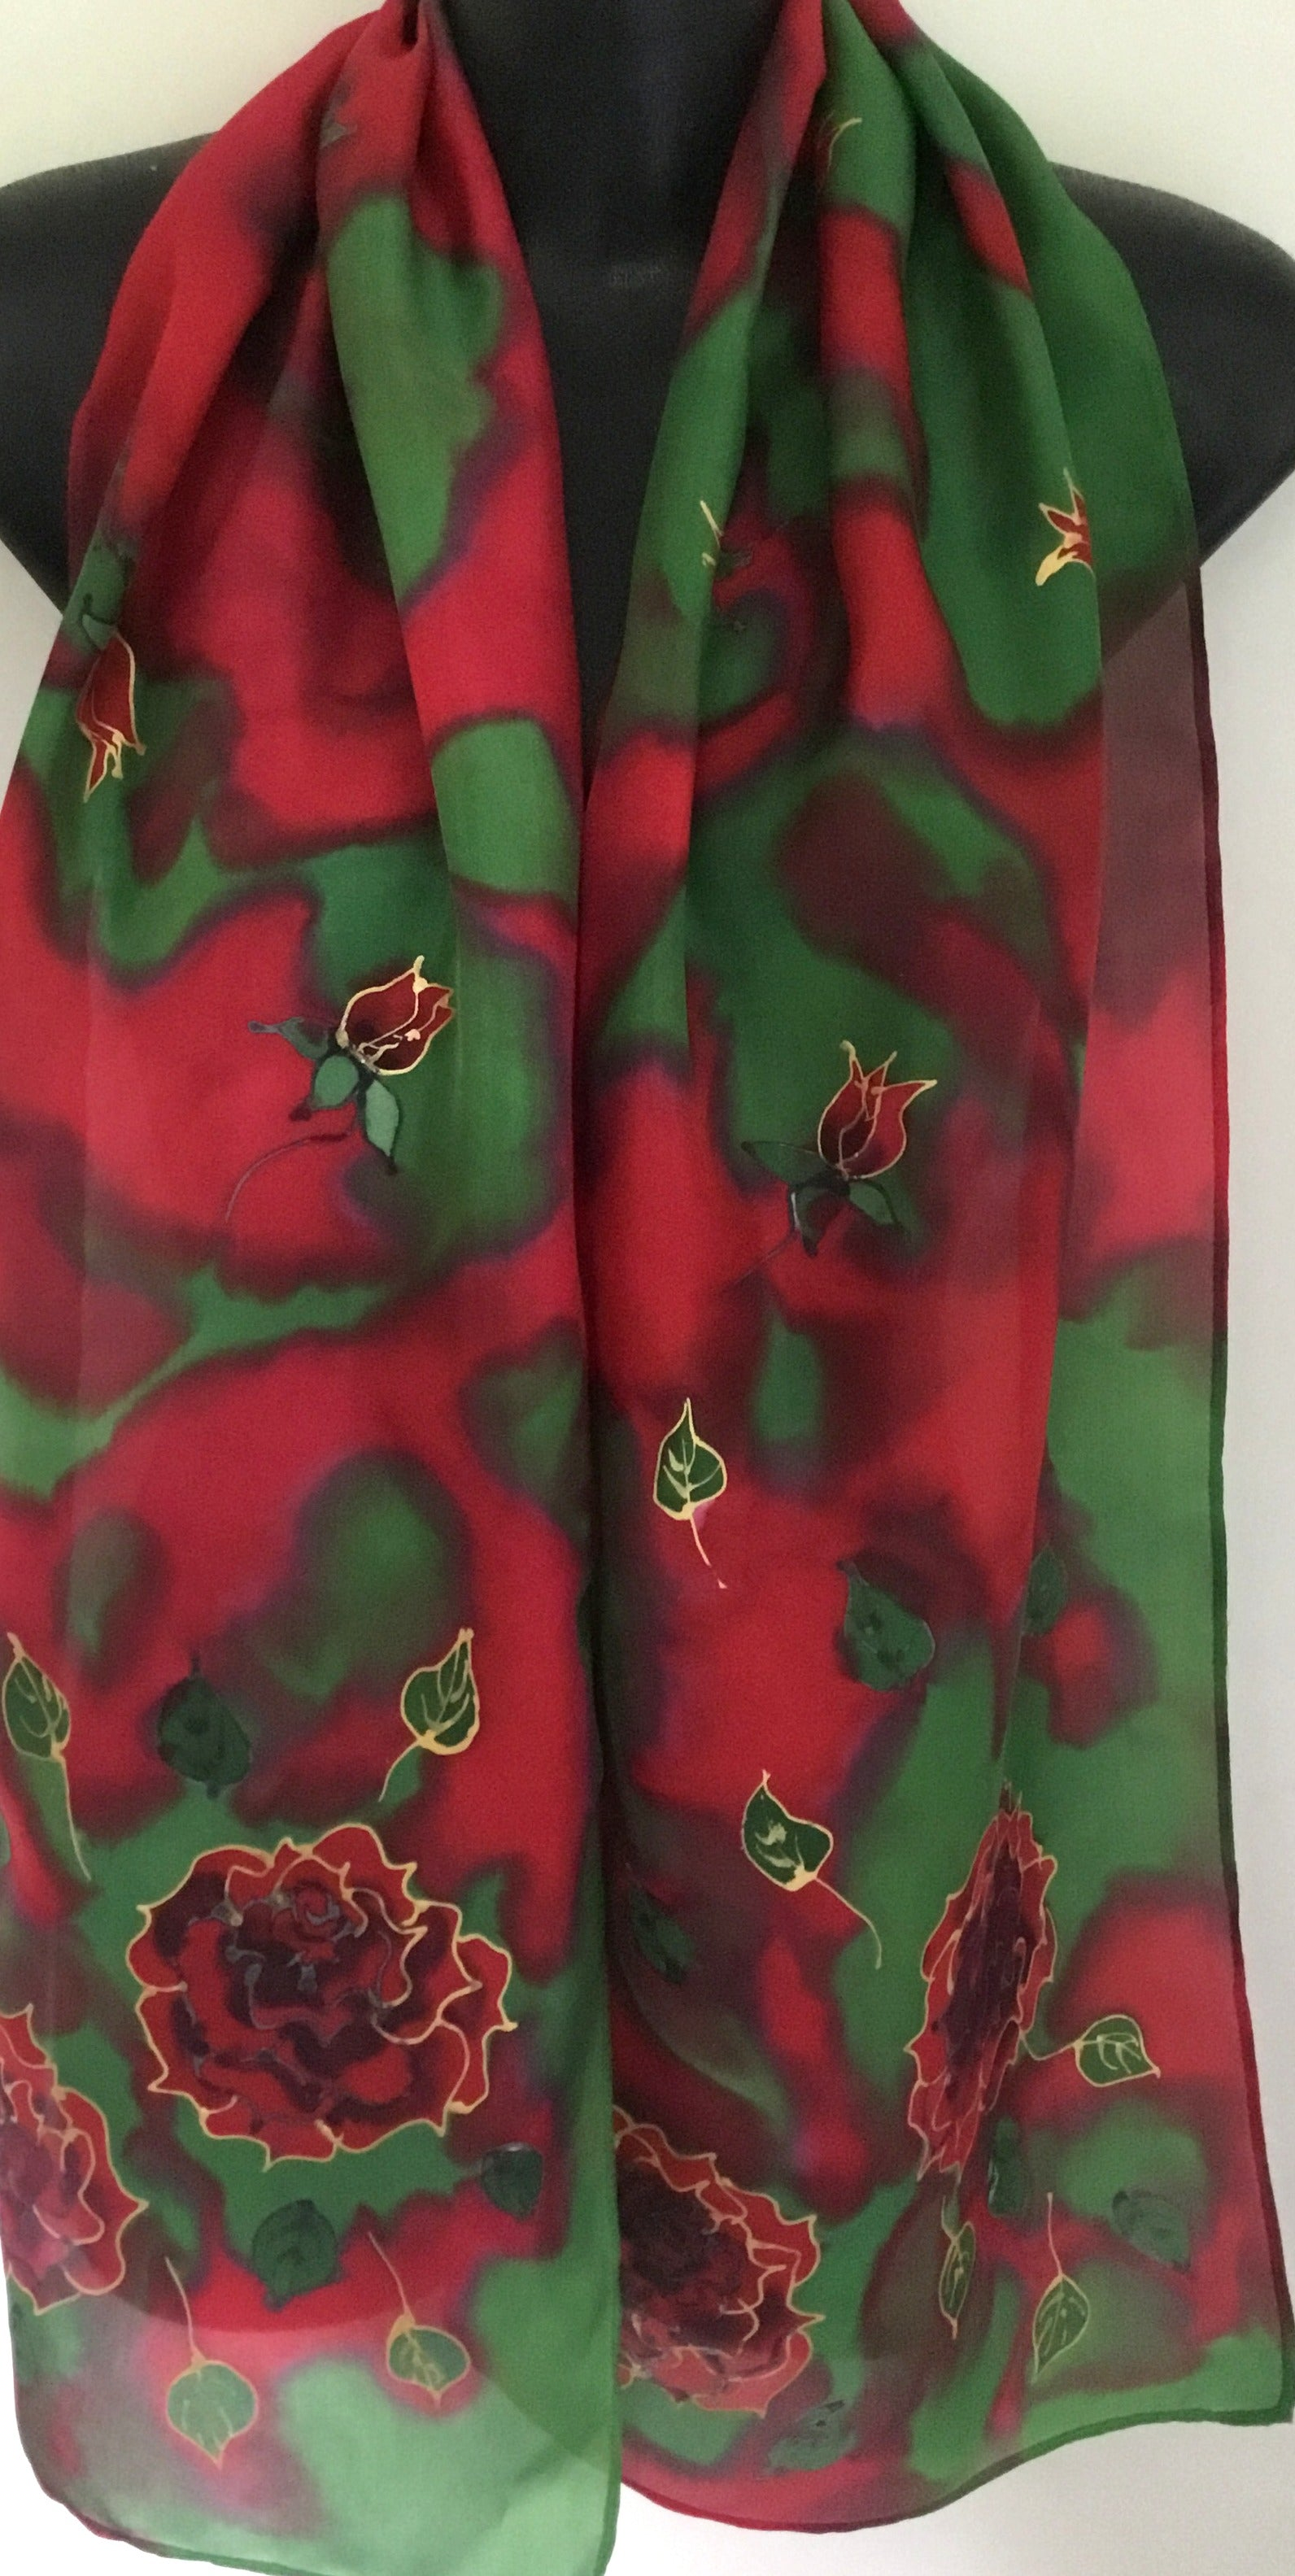 Rose on emerald Green & Red - Hand painted Silk Scarf - Satherley Silks NZ